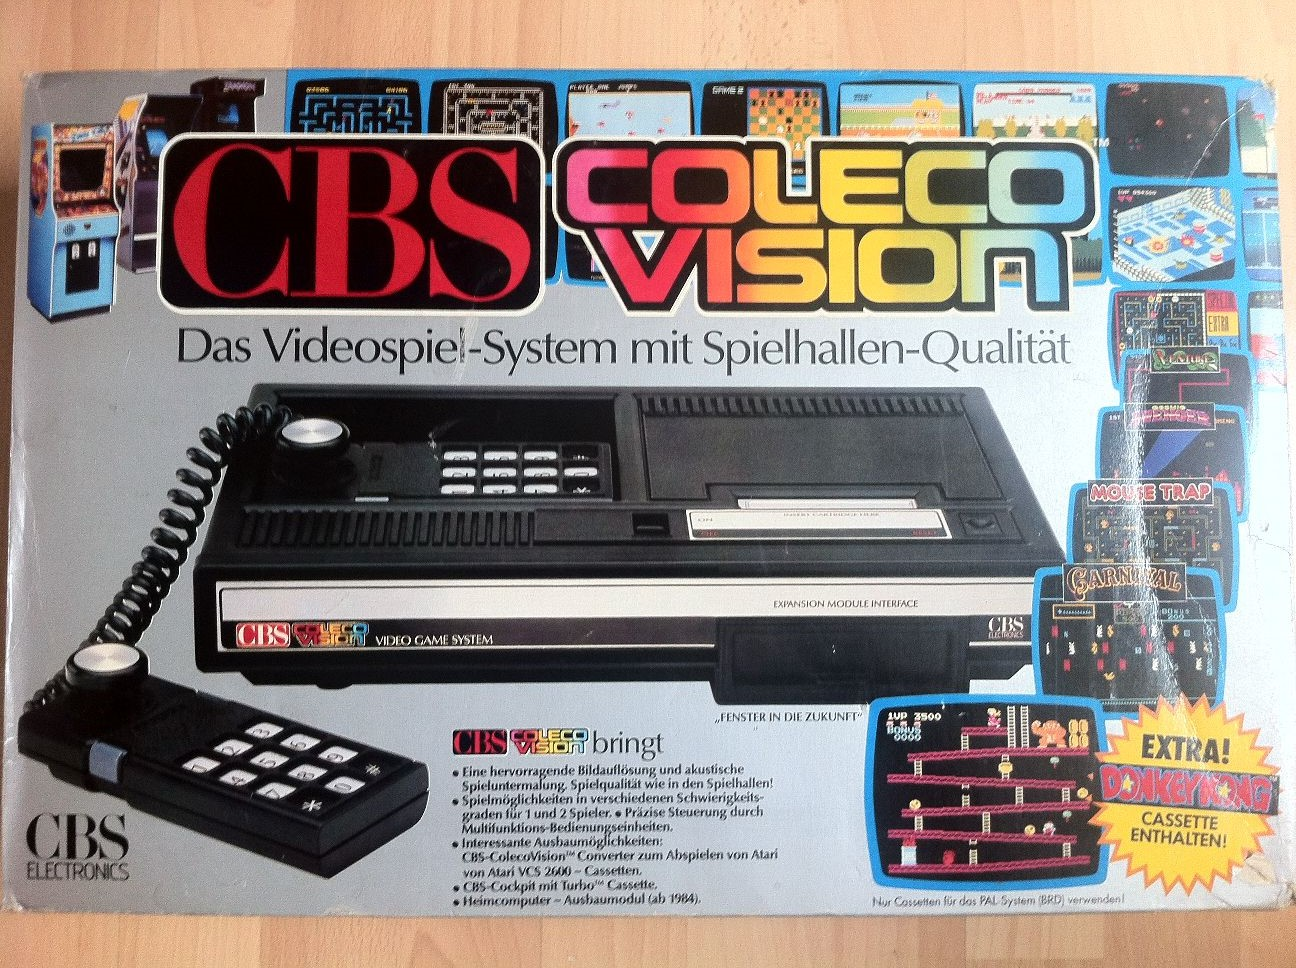 images/colecovision/image001.jpg